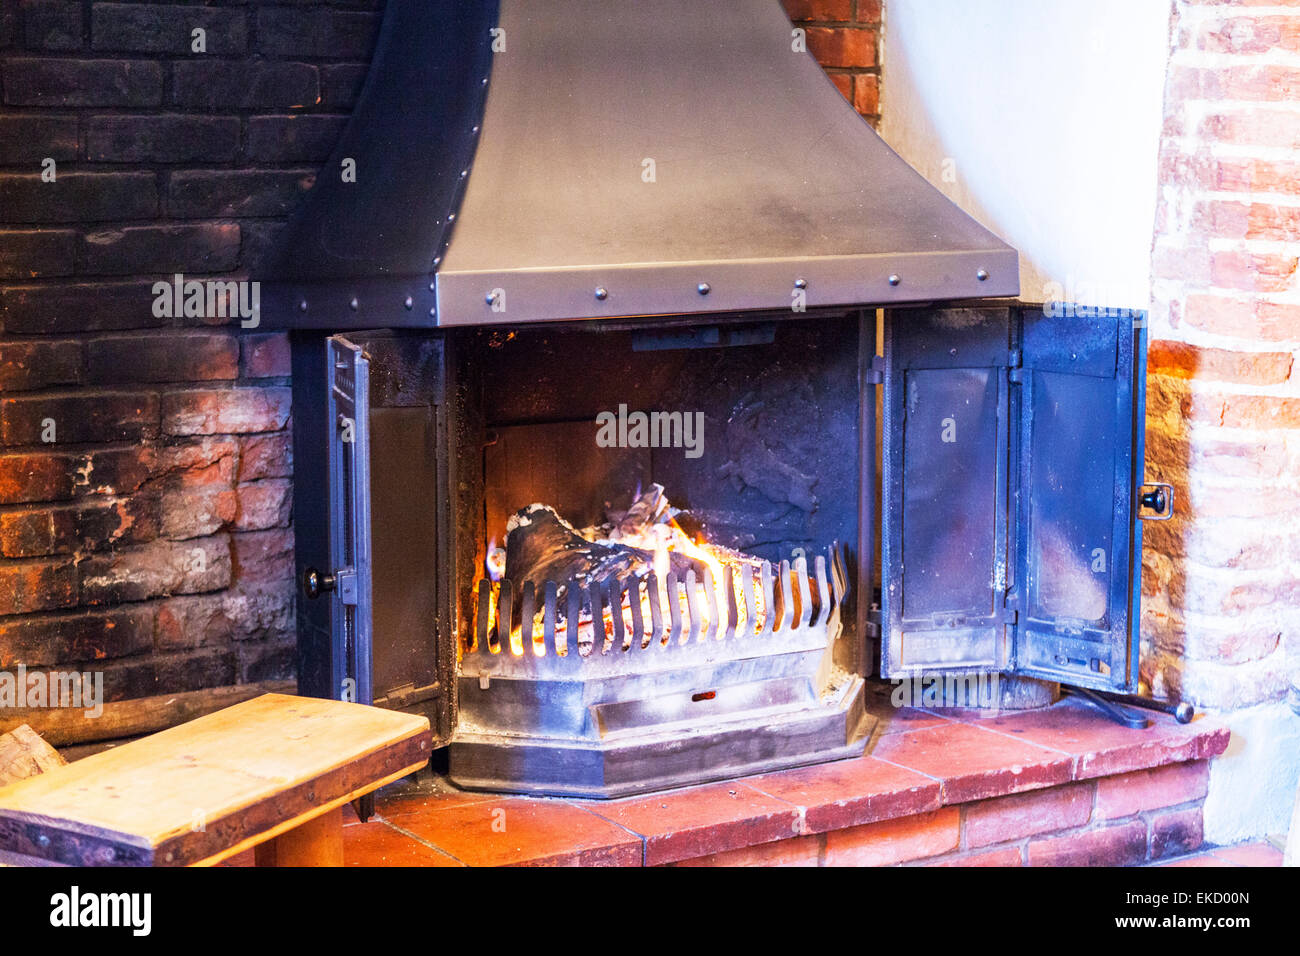 Log burner burning logs door open fire heat warmth warming room Norfolk UK England - Stock Image